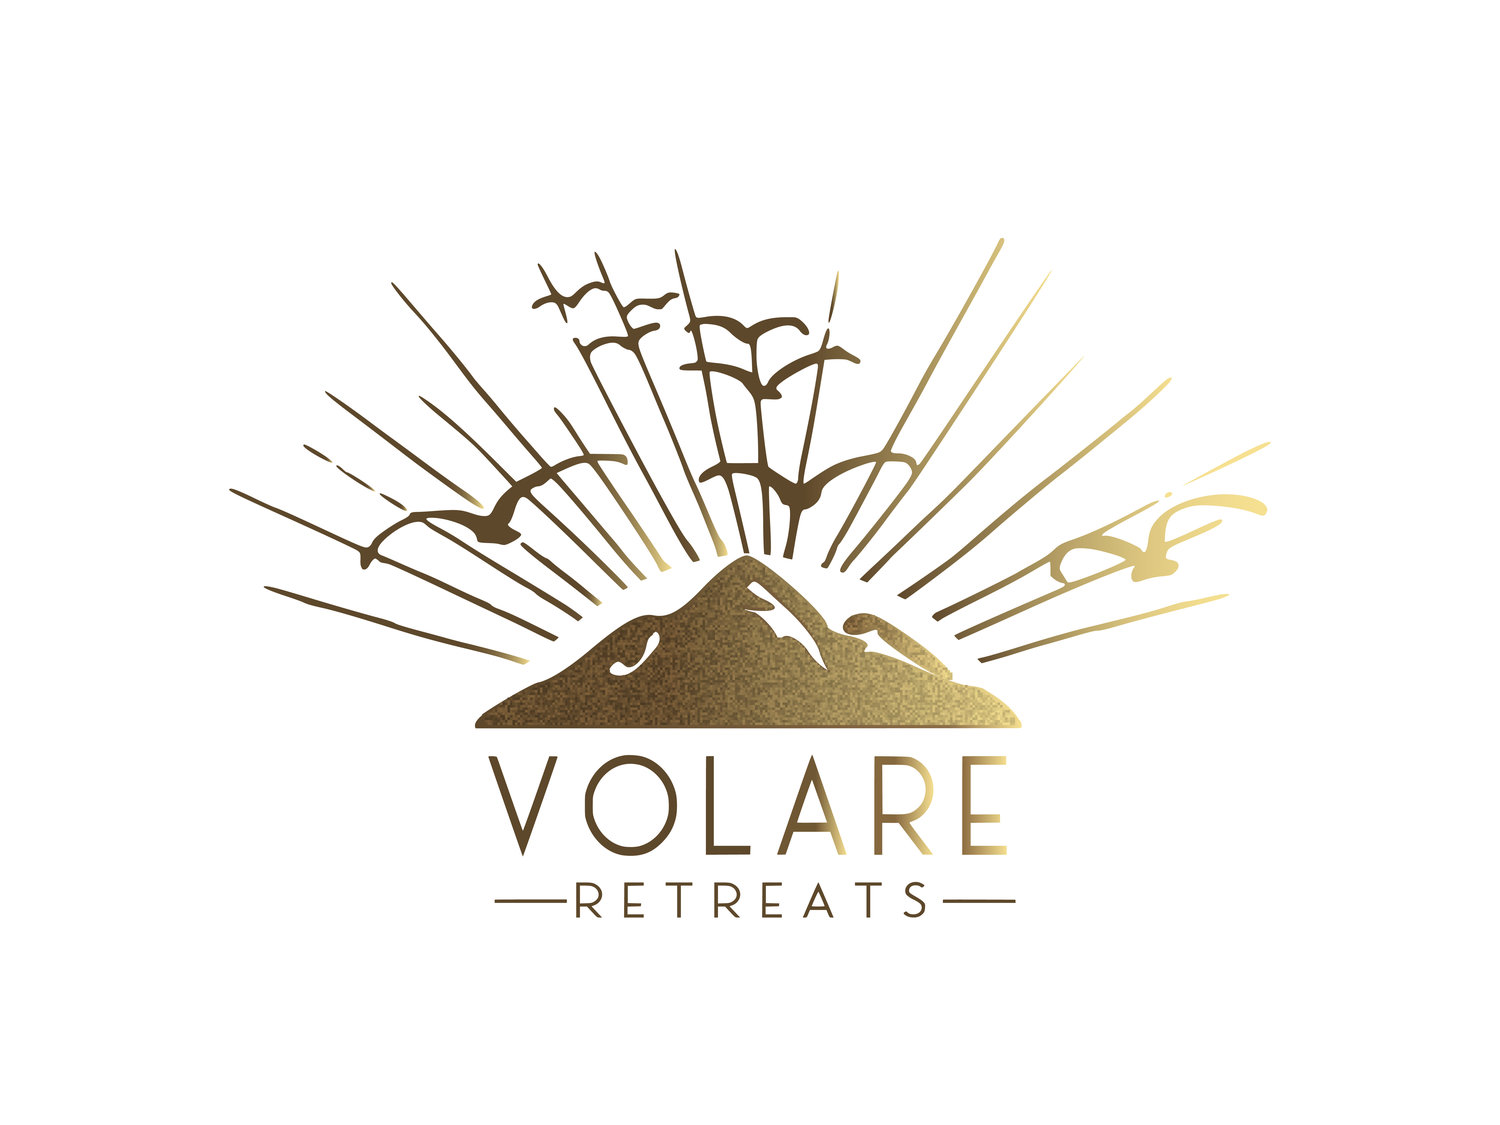 Volare Retreats